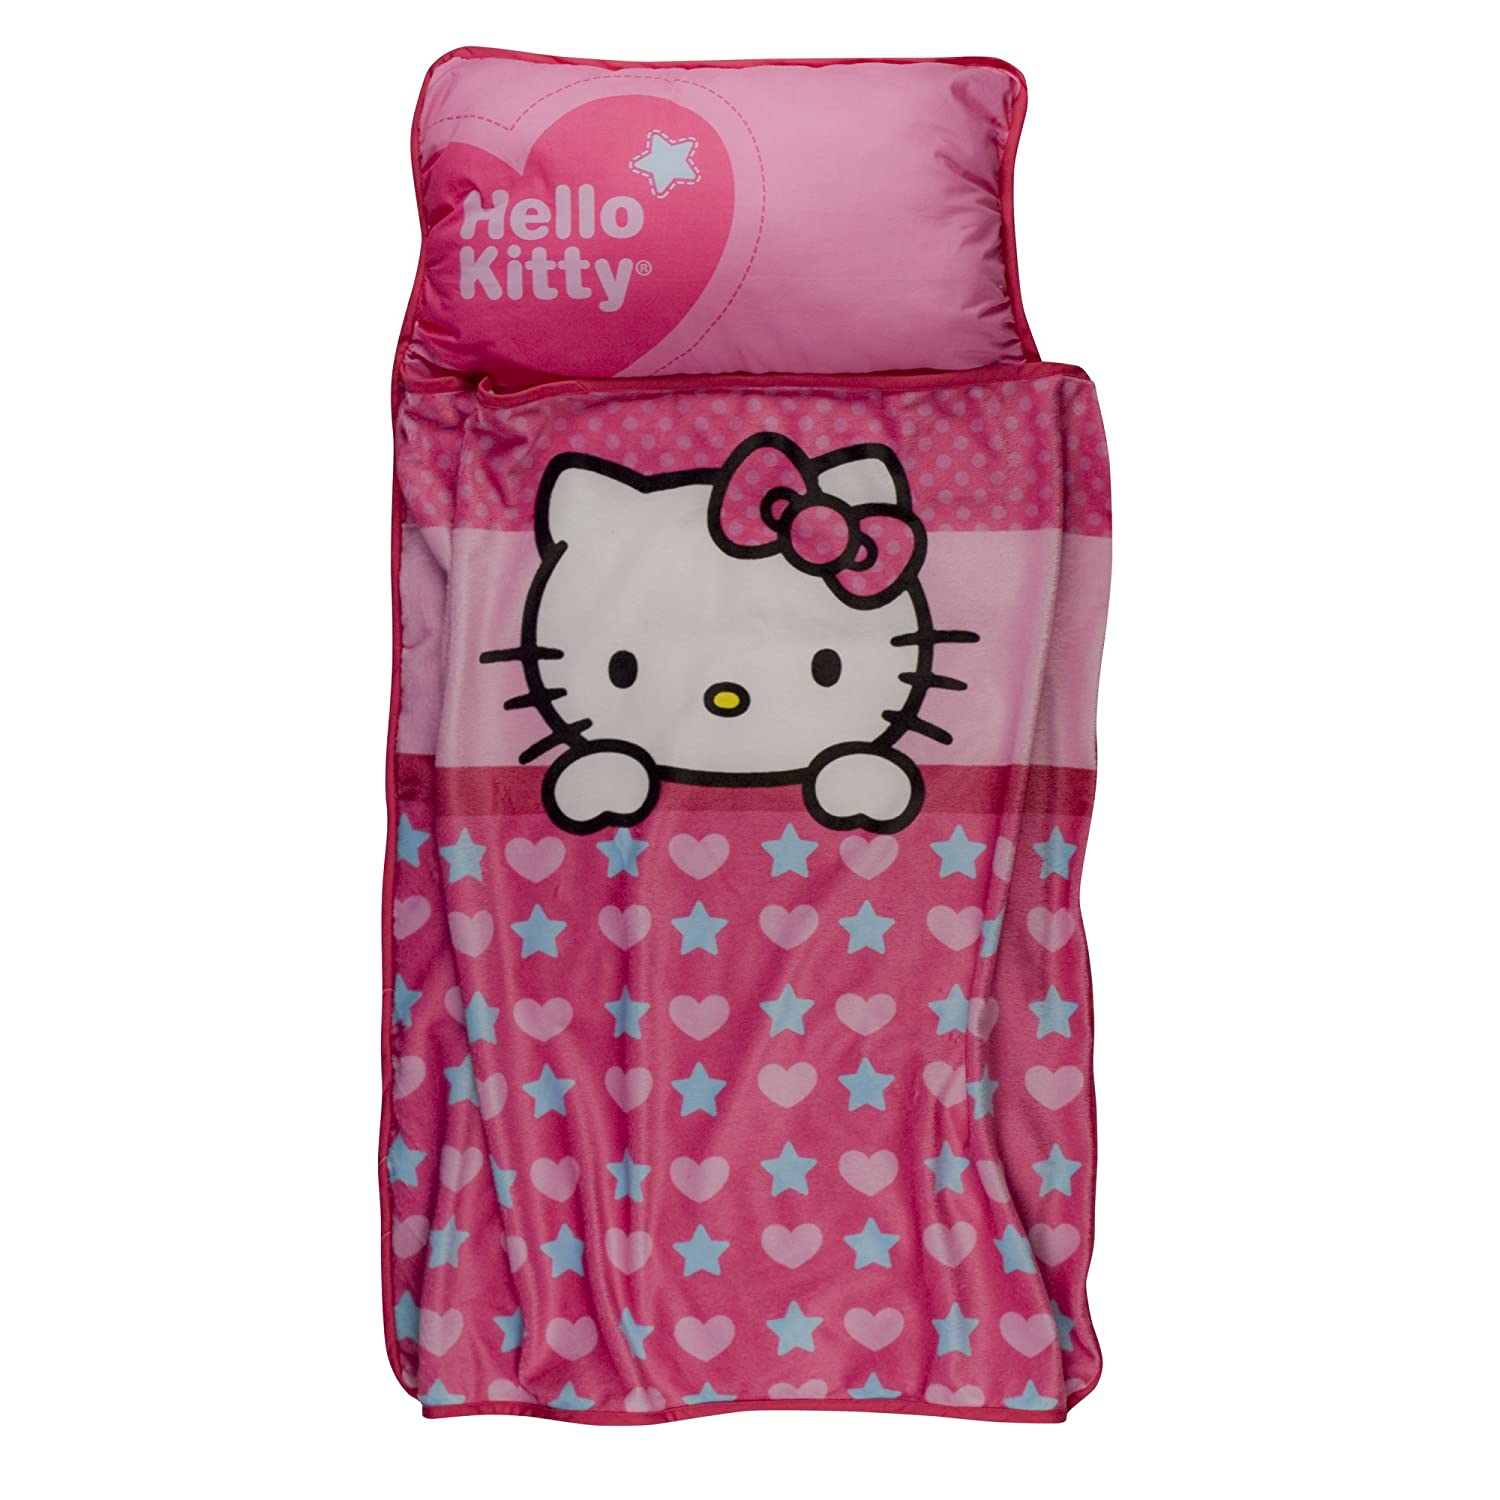 Diary of a wimpy kid collector s hello kitty folding chair adult - Lambs Ivy Nap Mat Hello Kitty Garden